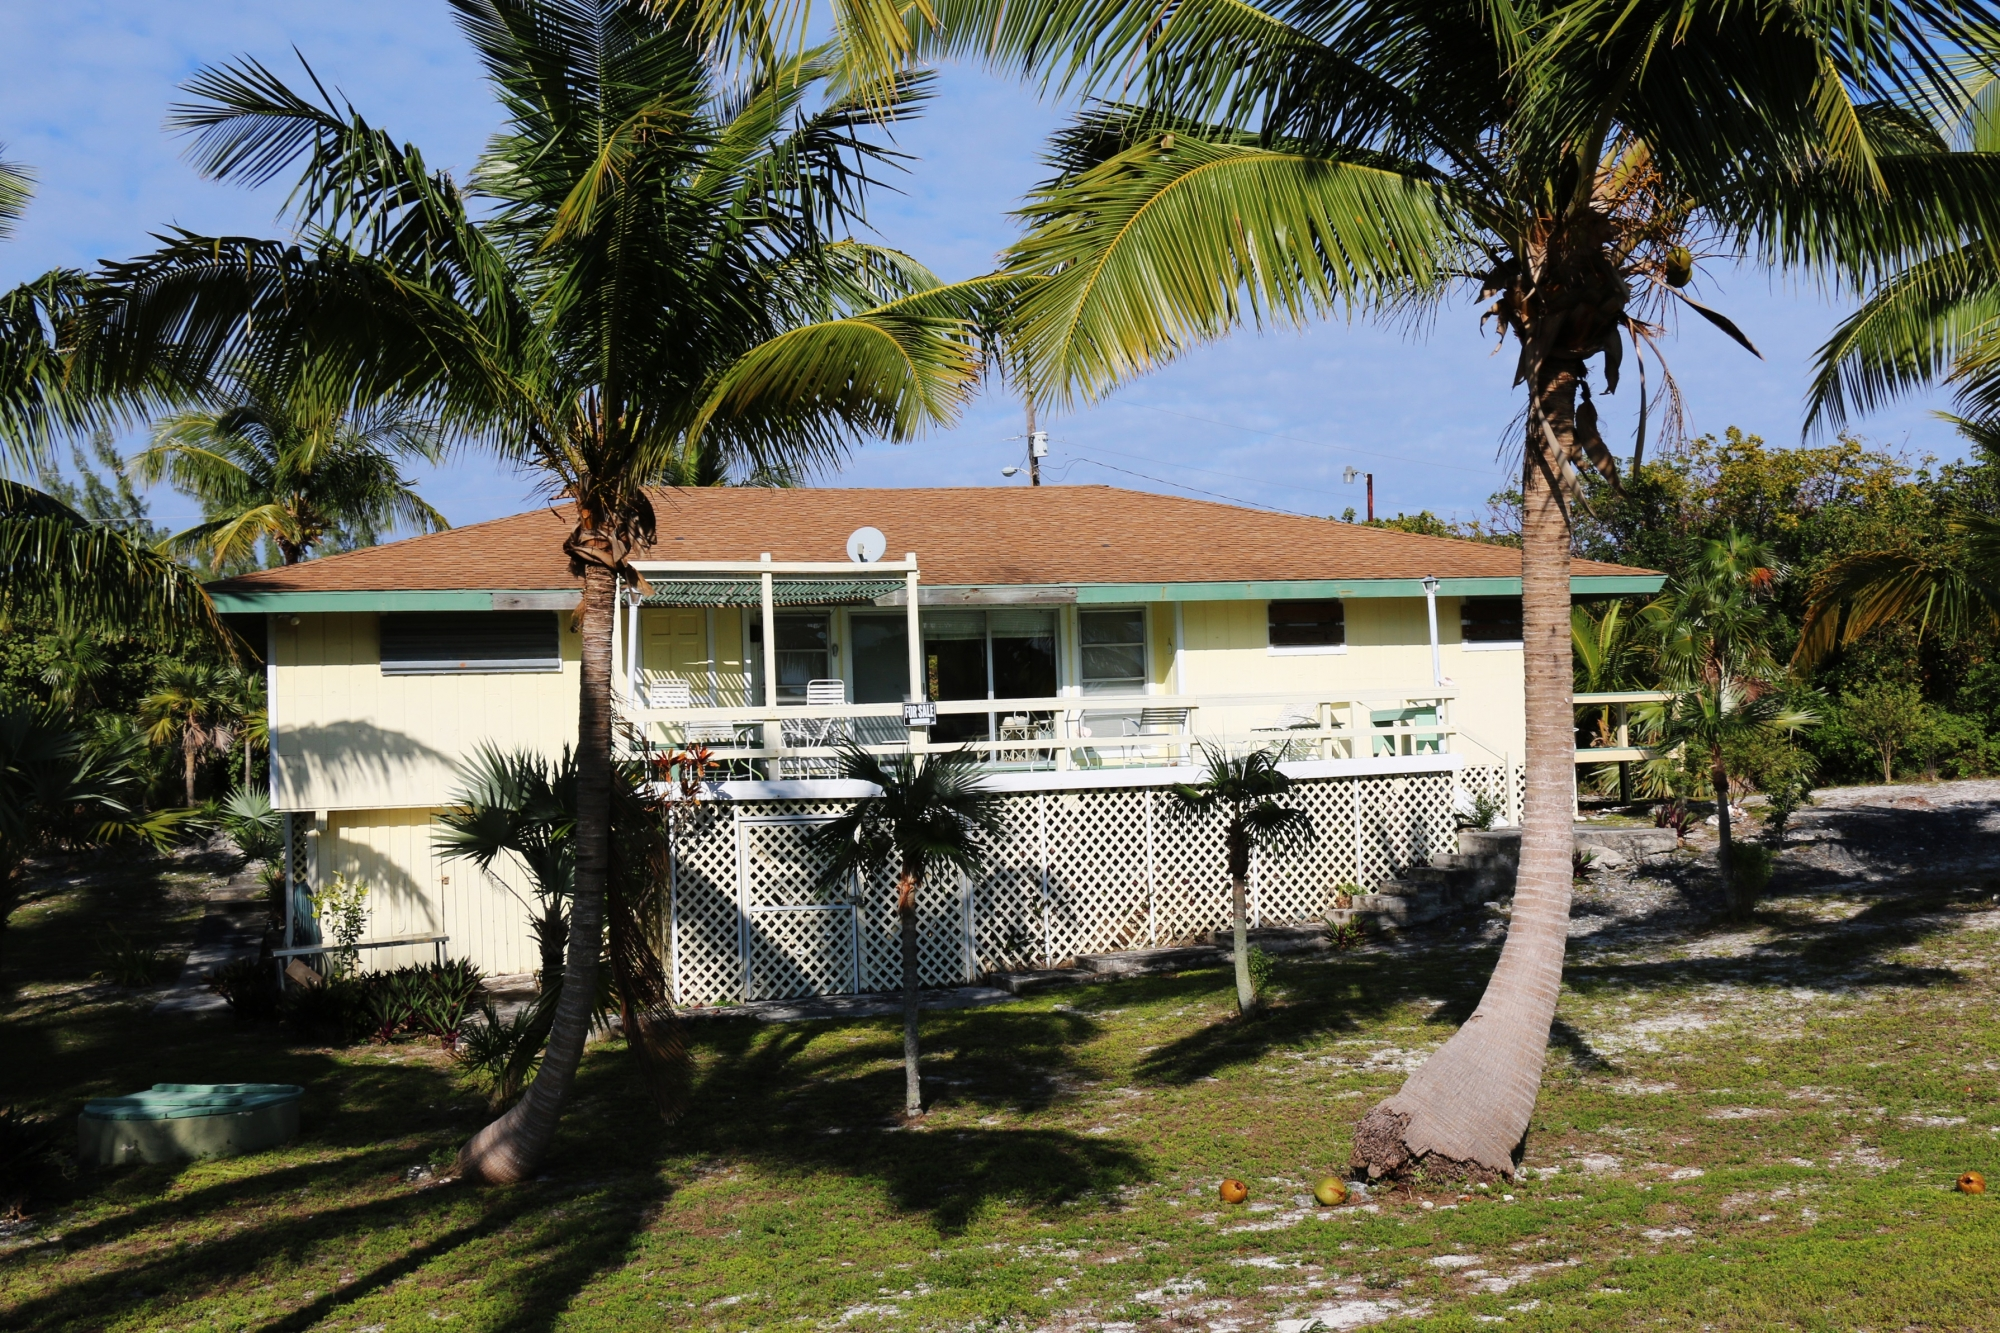 Bahamas Real Estate : Bahamas real estate on berry islands for sale id